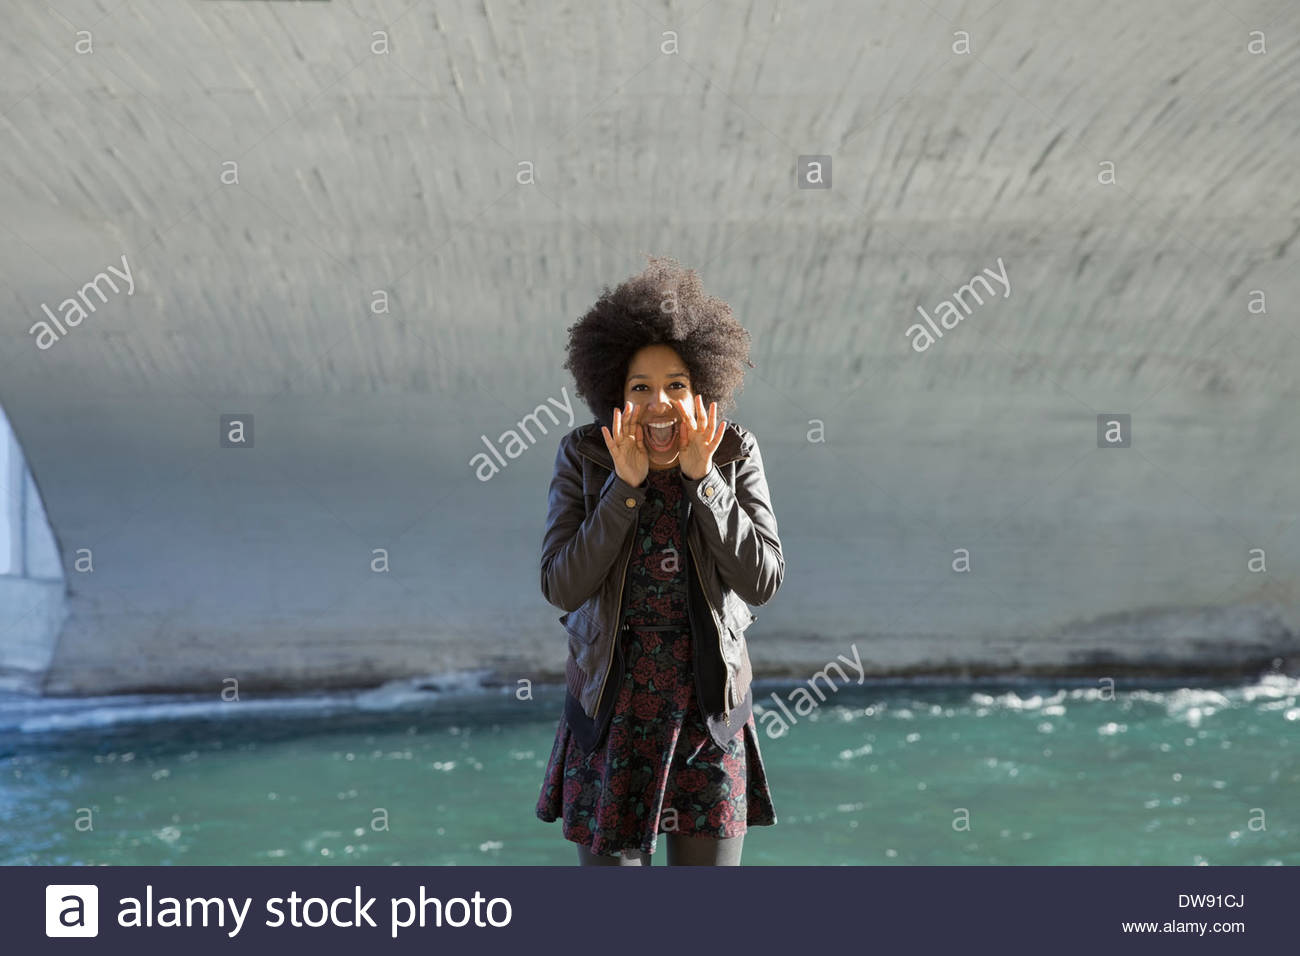 Portrait of excited woman shouting under bridge - Stock Image